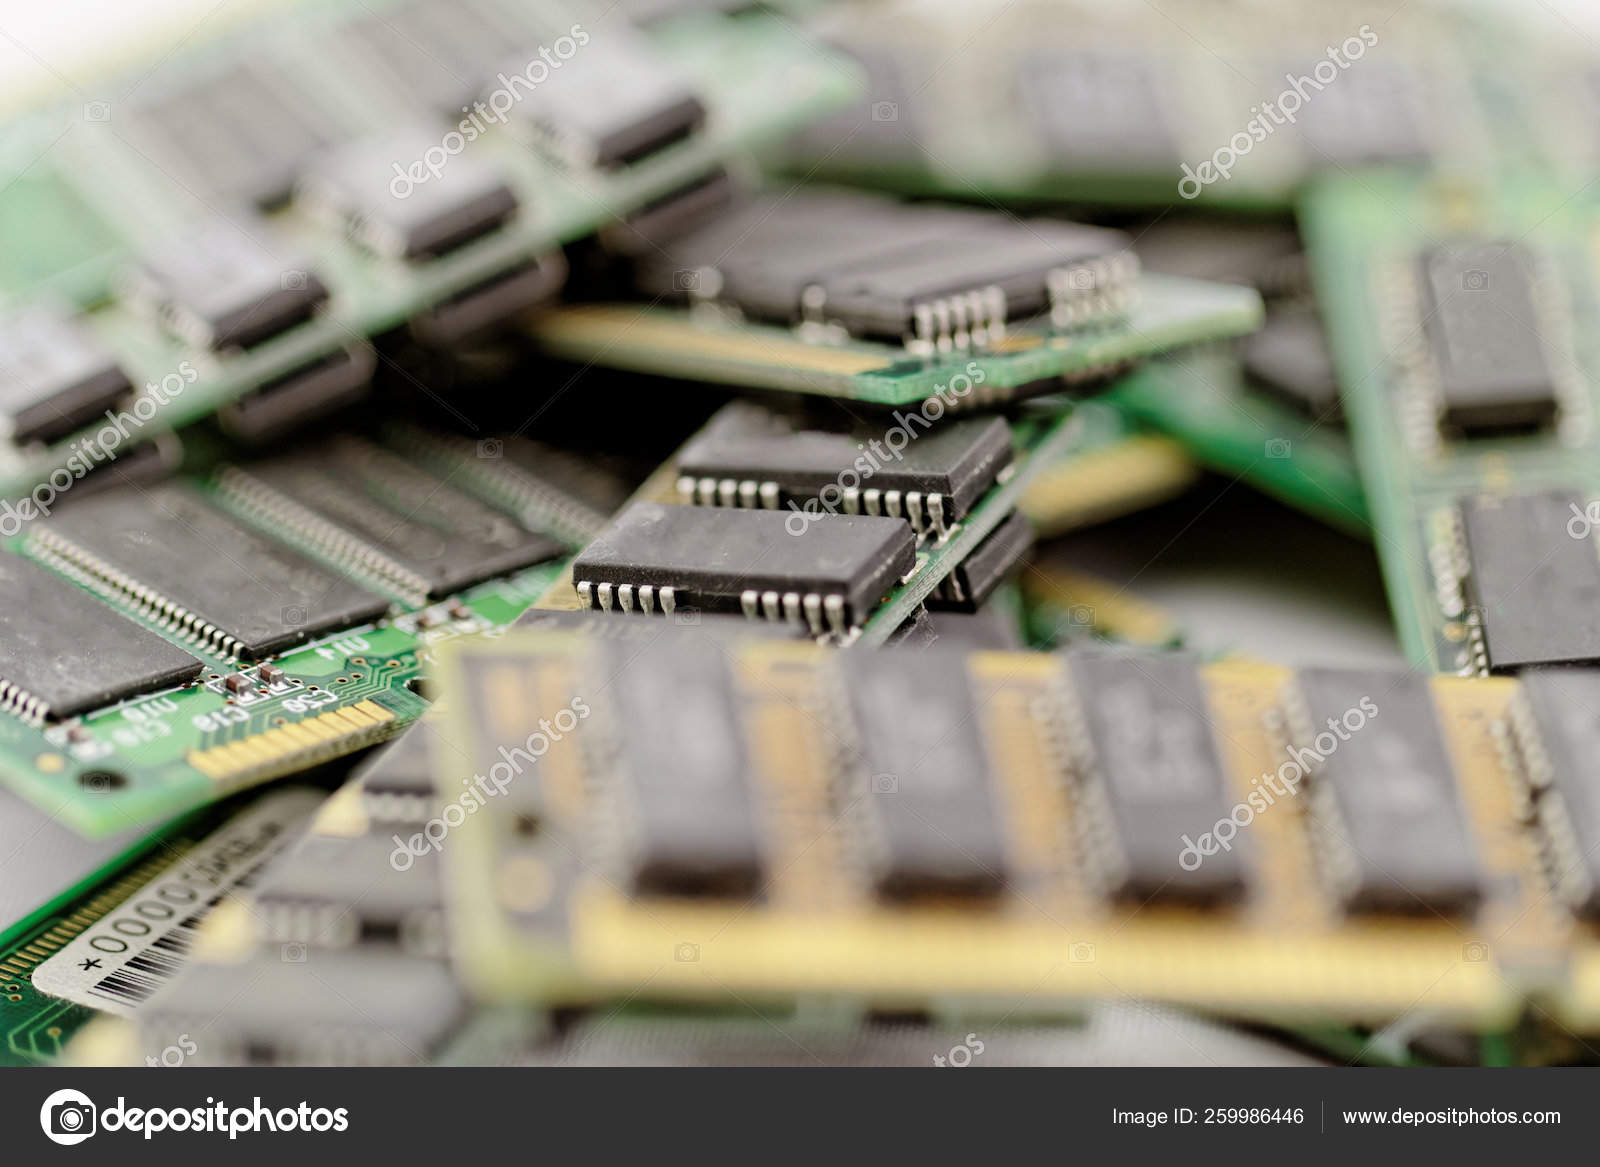 Many Different Computer Memory Modules Ram Ddr Eprom — Stock